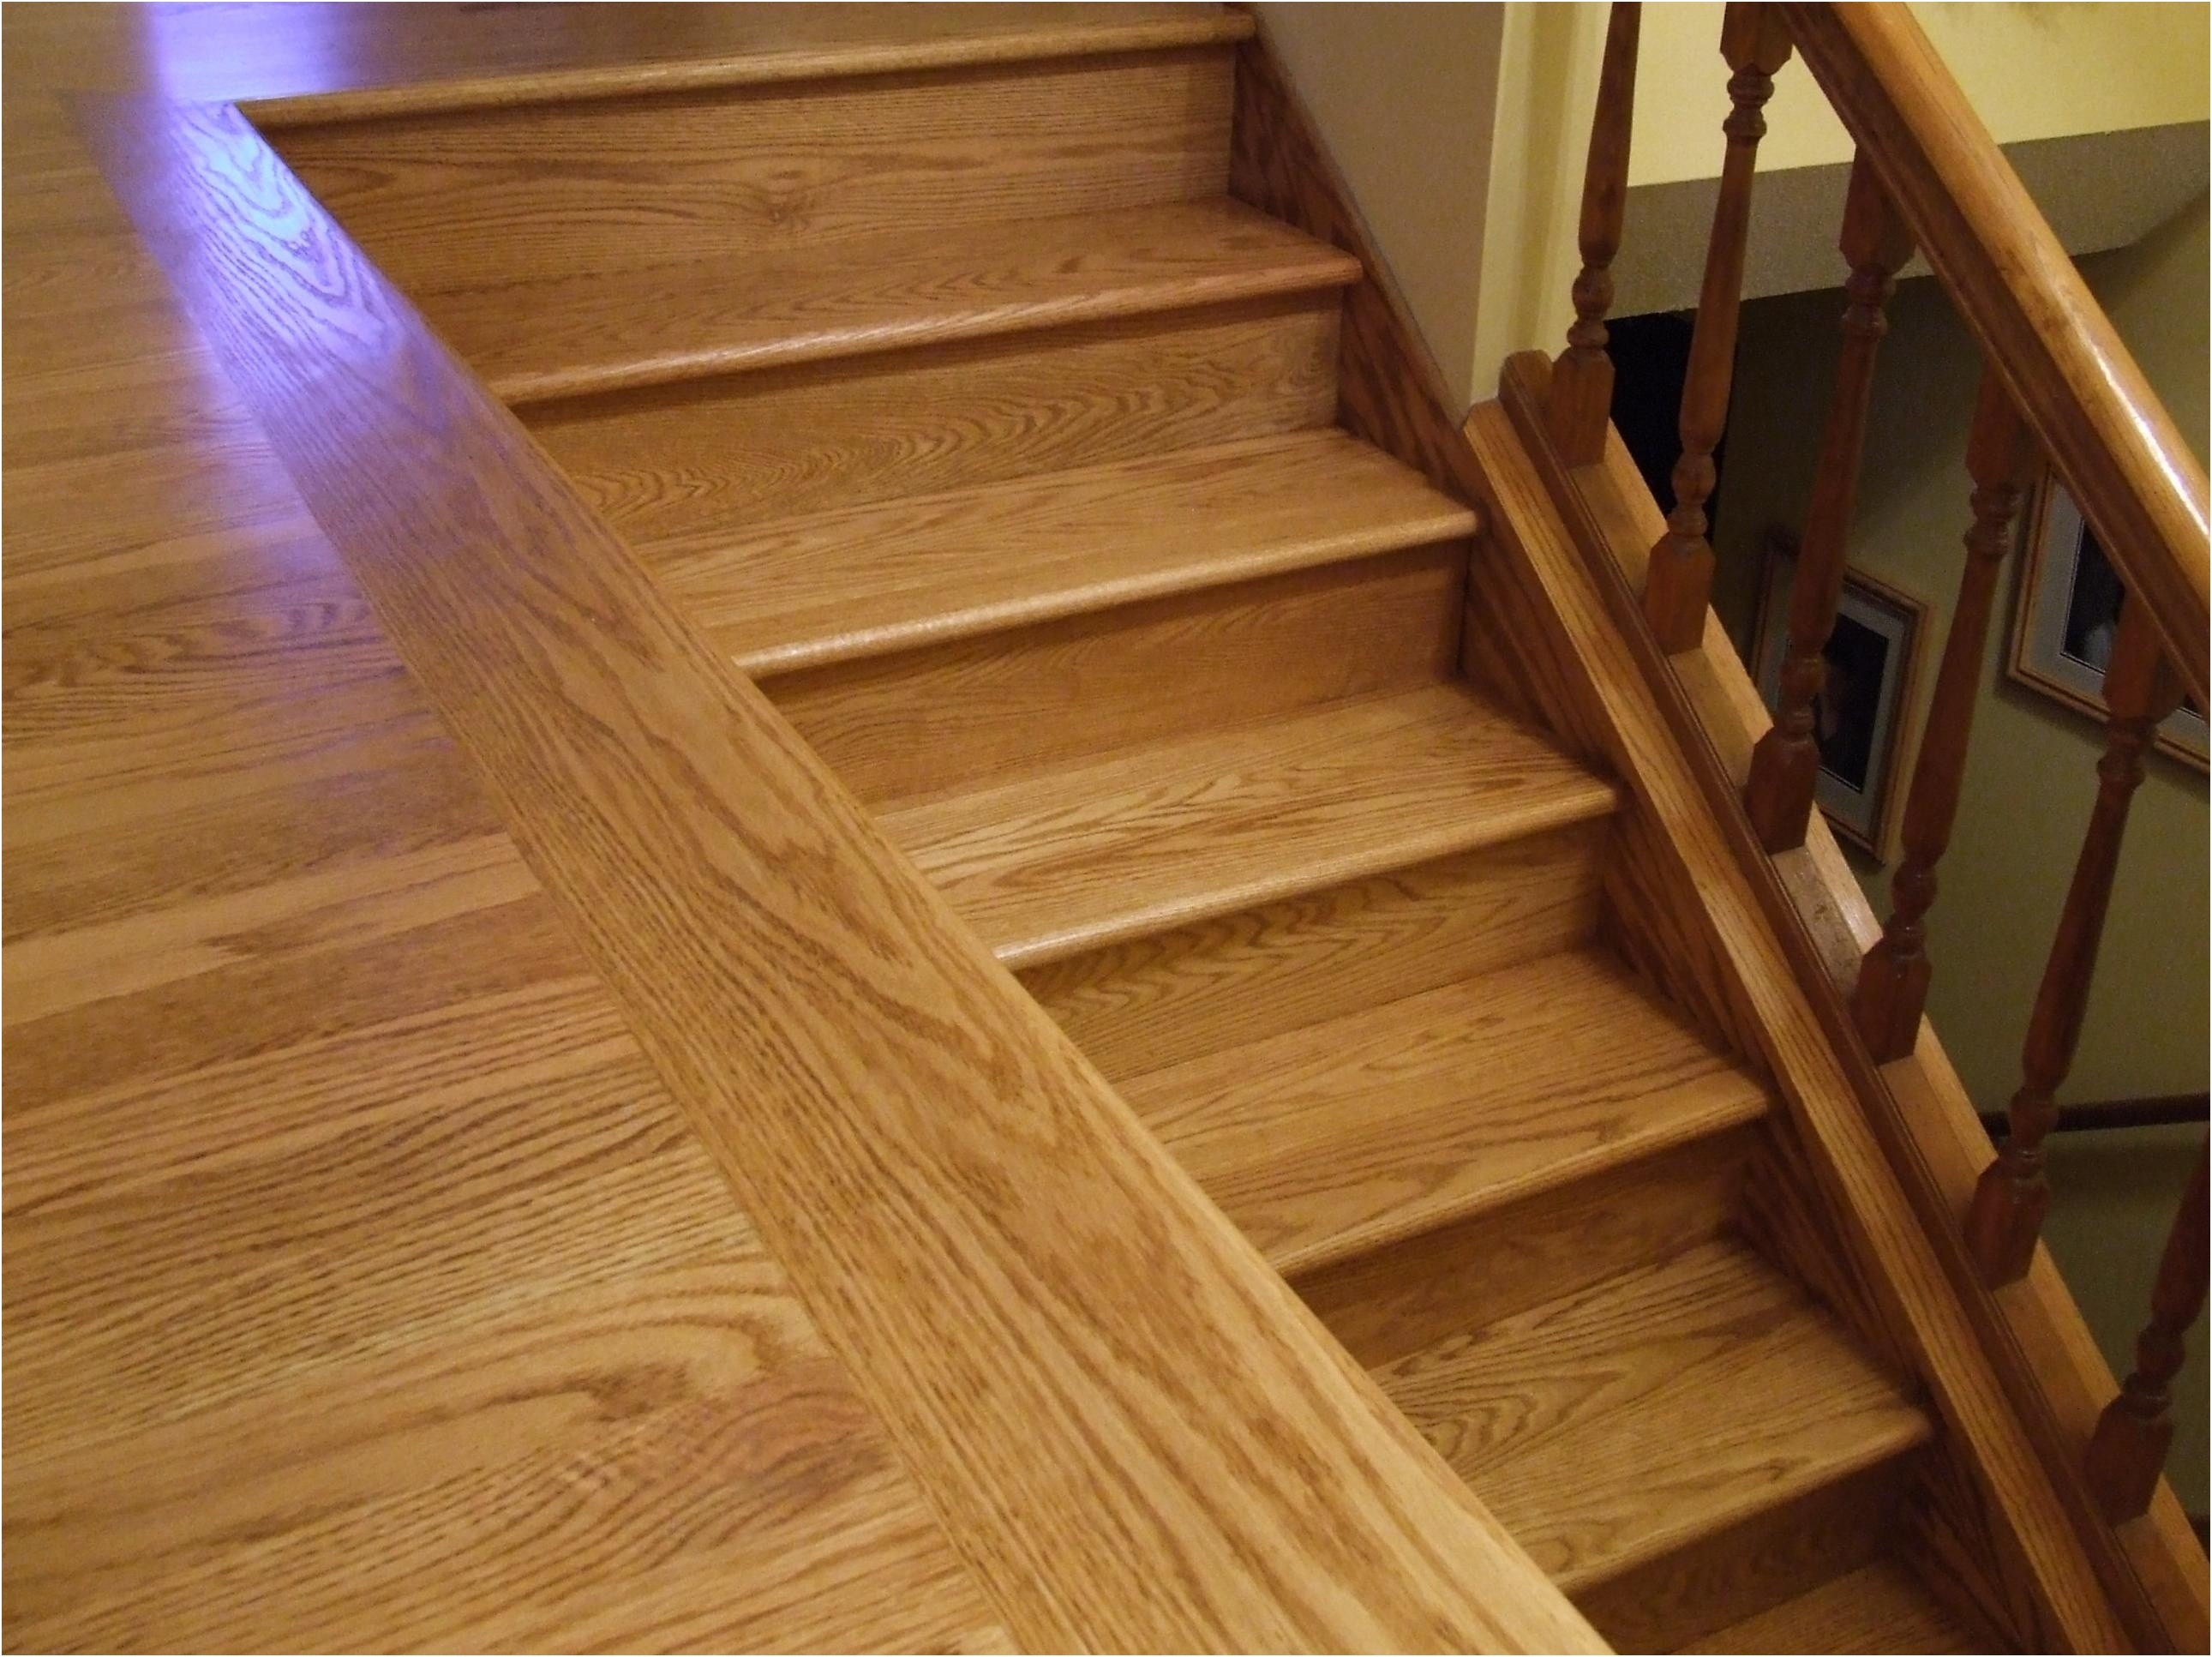 Hardwood Flooring Unfinished Prices Of Homemade Hardwood Floor Cleaner Unfinished Hardwood Floor Cleaner Pertaining to Homemade Hardwood Floor Cleaner Fake Wood Laminate Maple Flooring Cheap Pergo Pricing Rustic